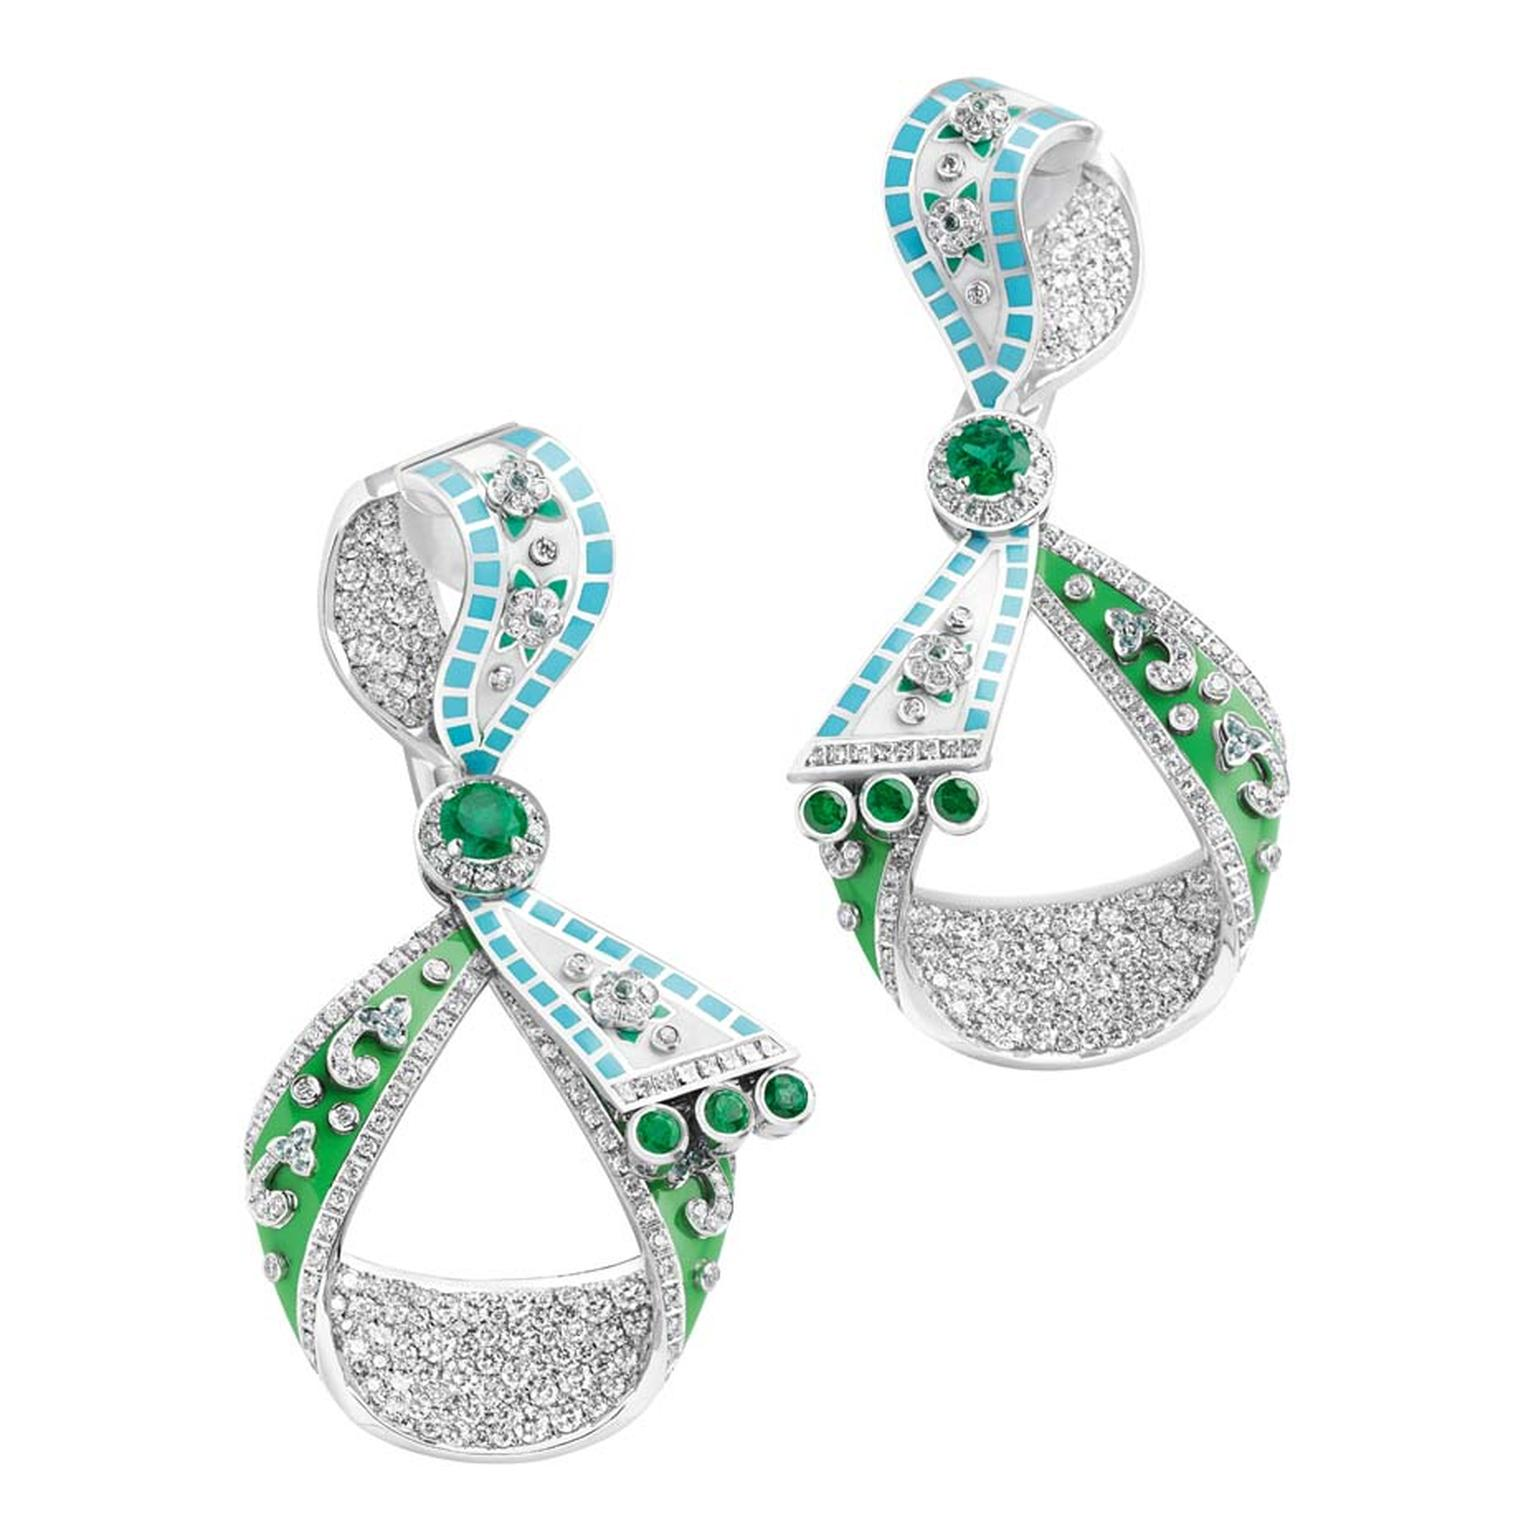 The Summer in Provence collection, which includes earrings and ornate bejeweled green and blue pendants, are statement pieces that sum up the brilliance of Fabergé's creativity.